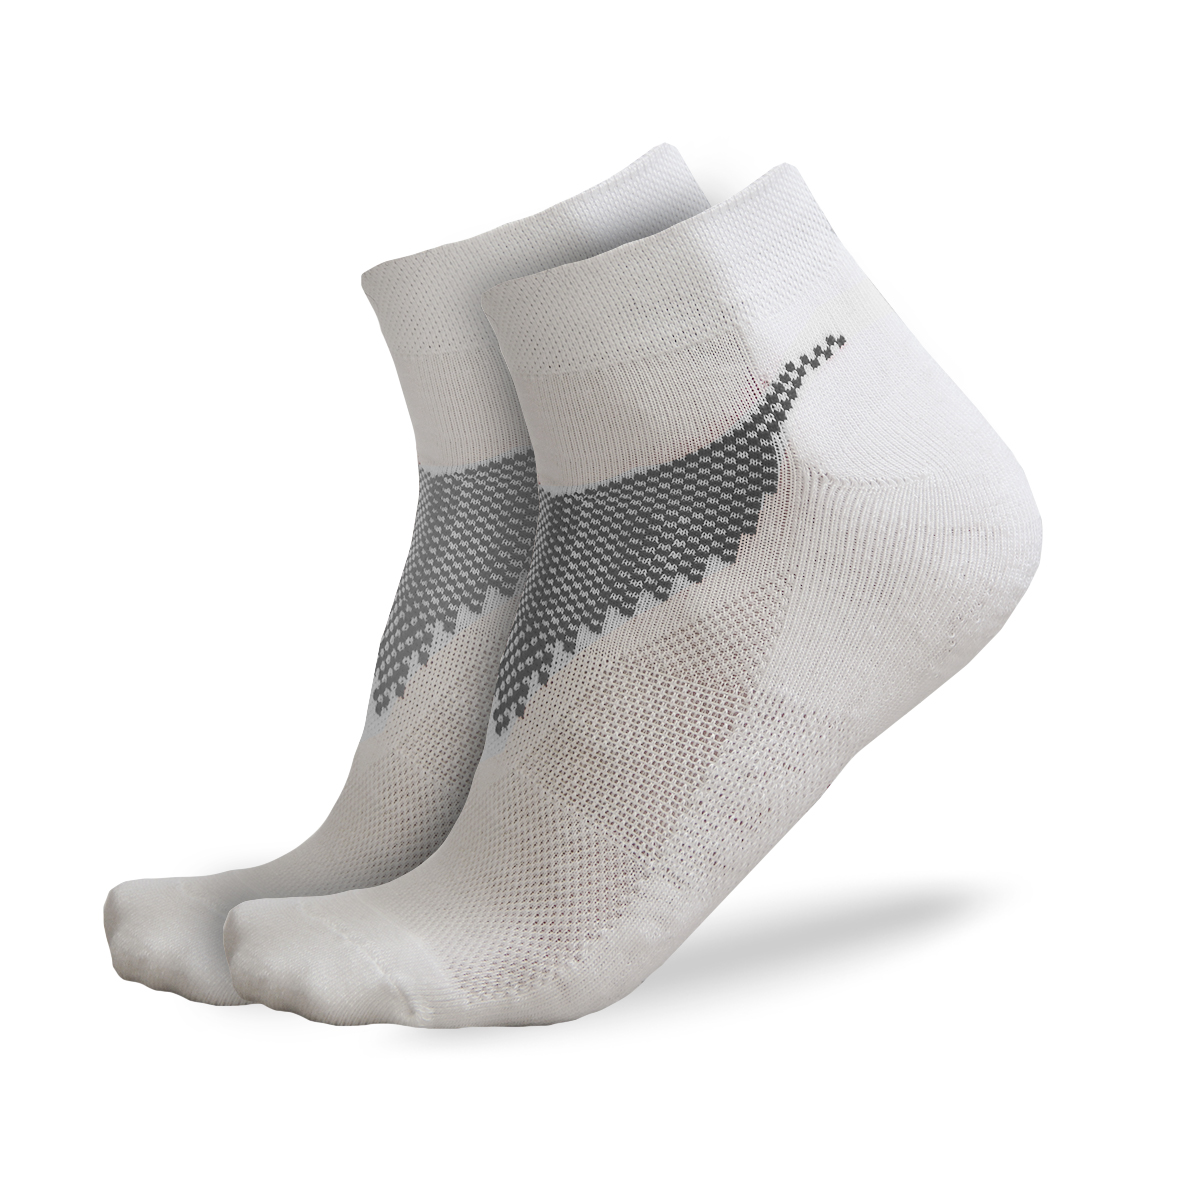 FREEZ ANCLE SOCKS 2-pack white 35-38